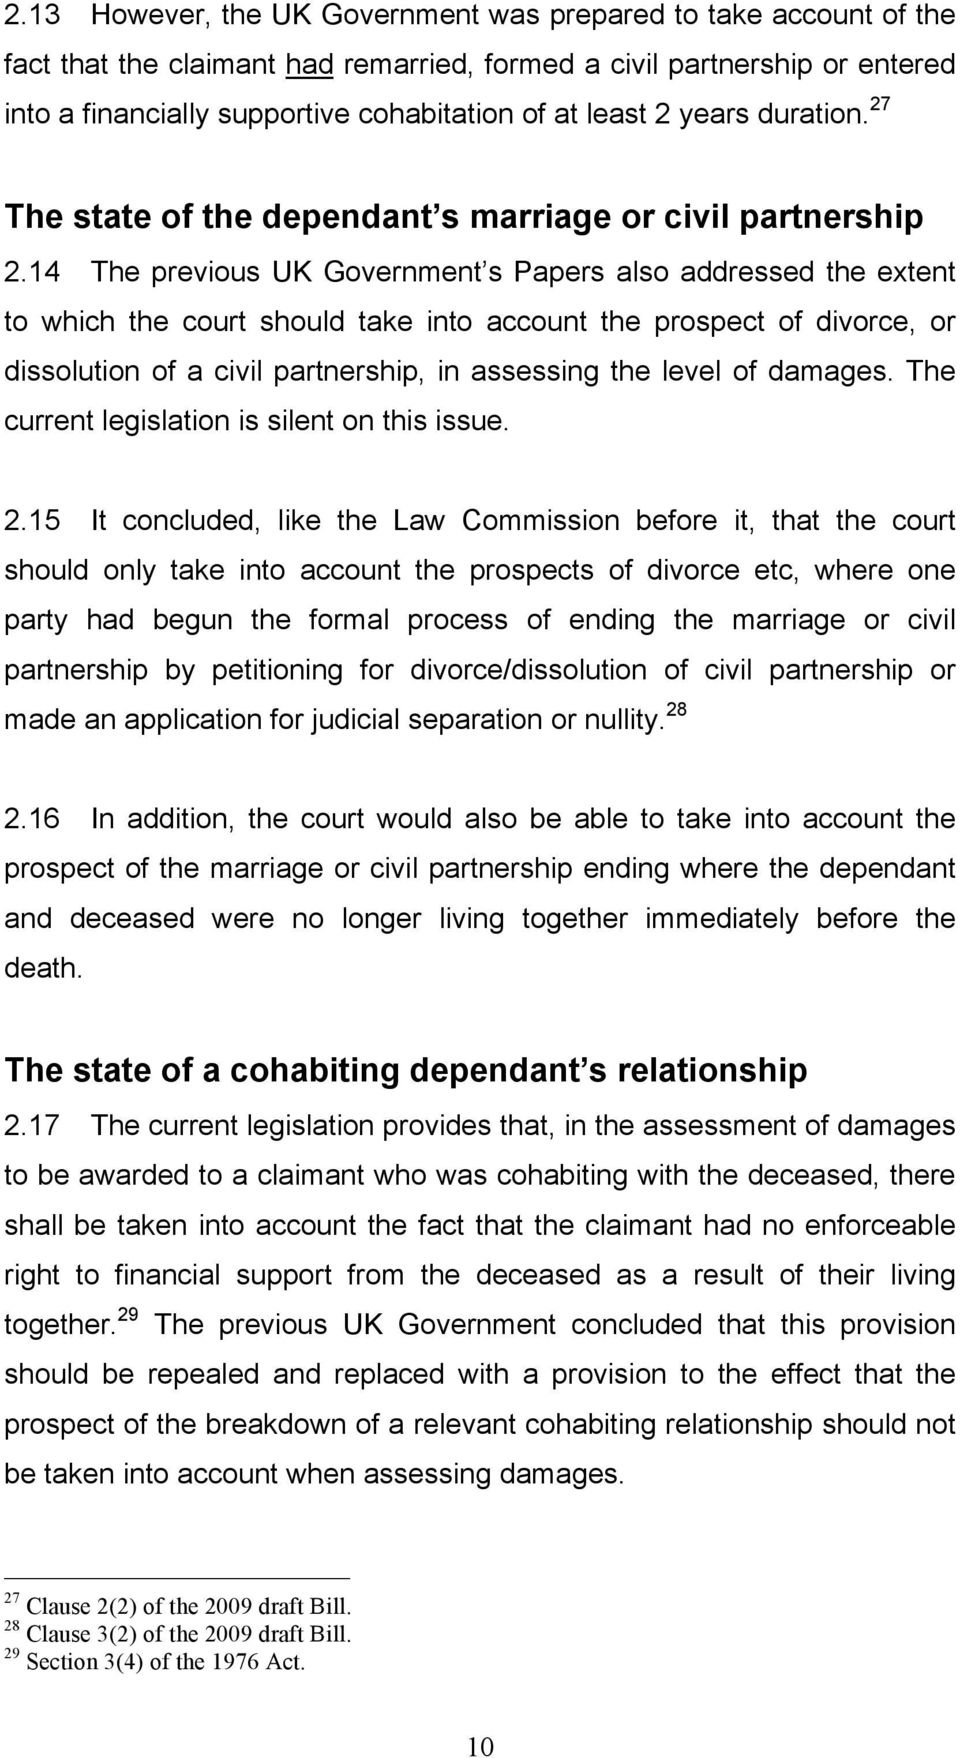 14 The previous UK Government s Papers also addressed the extent to which the court should take into account the prospect of divorce, or dissolution of a civil partnership, in assessing the level of